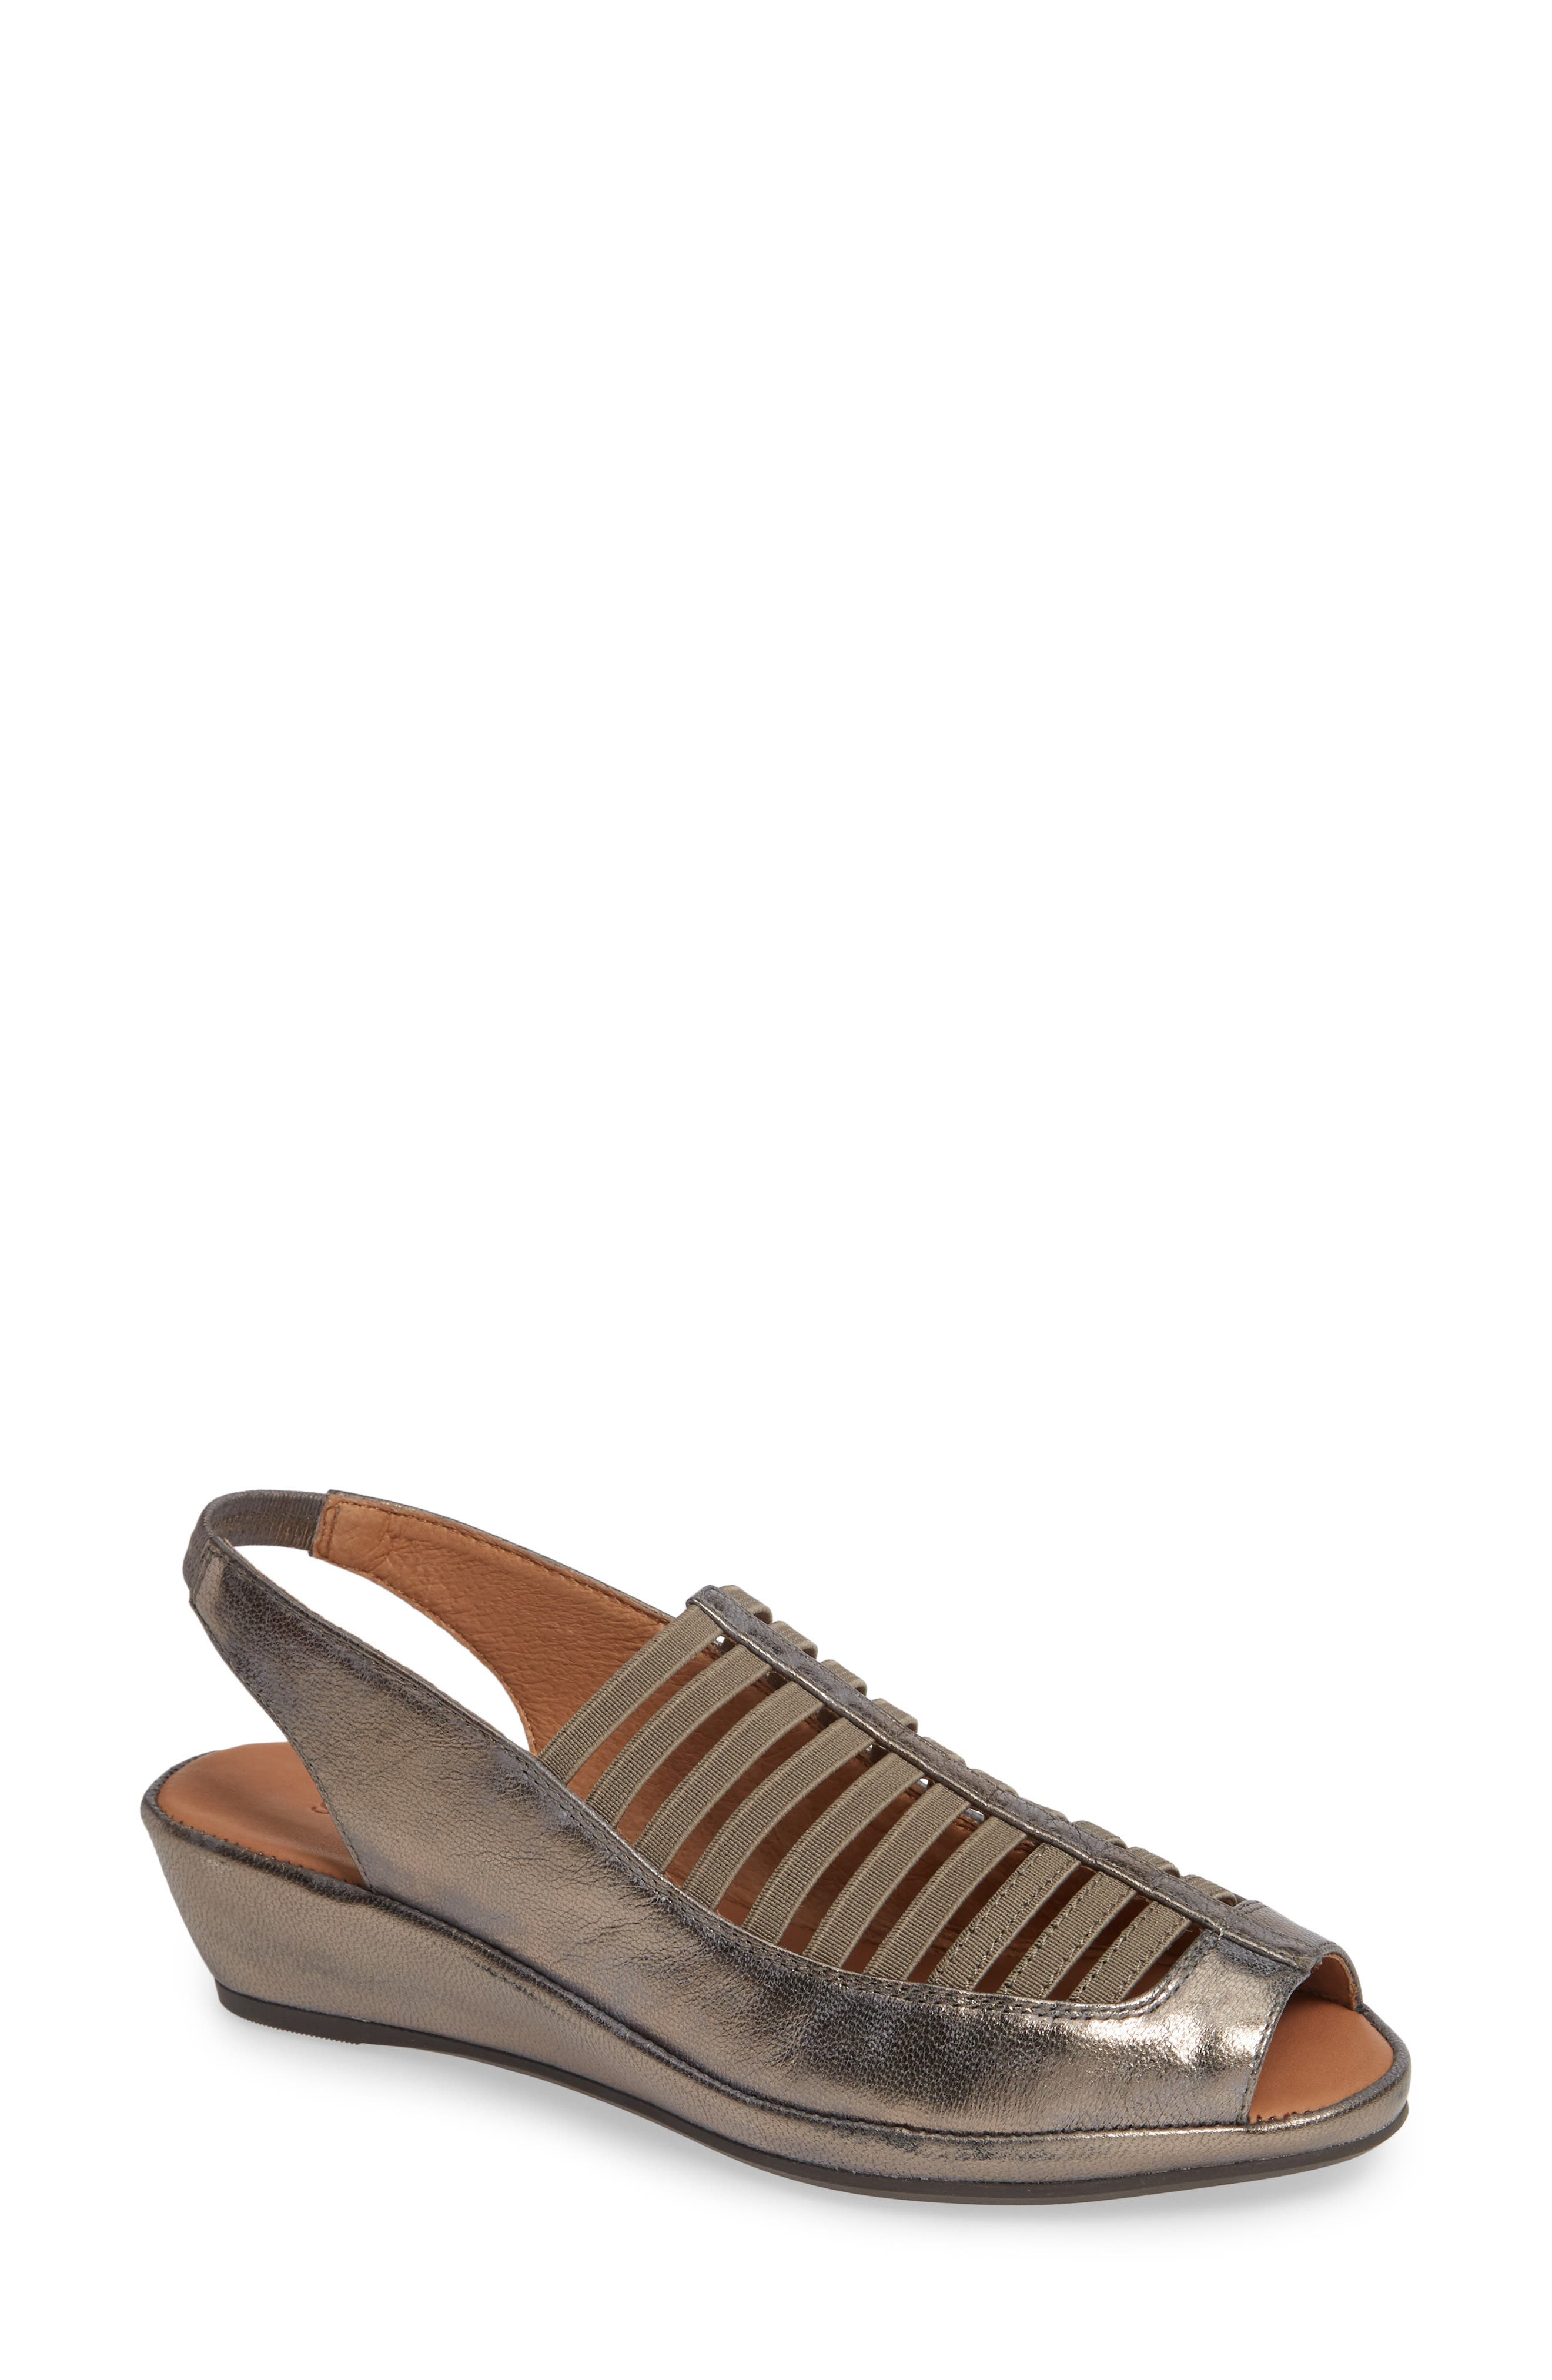 GENTLE SOULS BY KENNETH COLE, 'Lee' Sandal, Main thumbnail 1, color, PEWTER METALLIC LEATHER